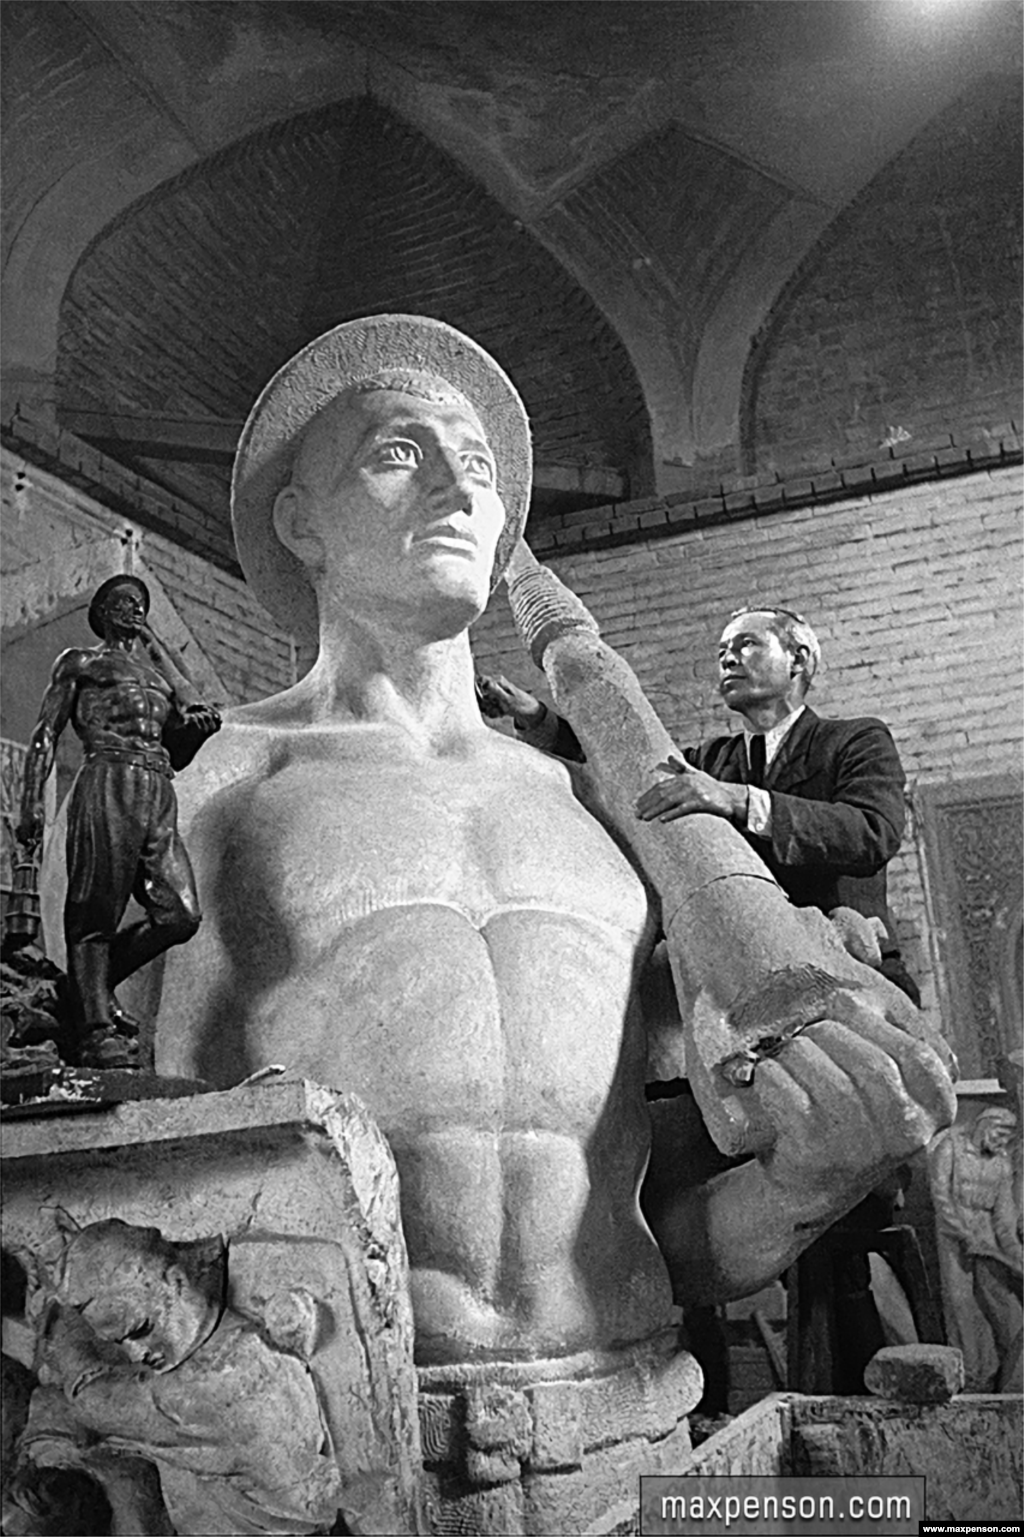 The workshop of sculptor N. Krasovsky in 1943. The chiseled figure of a miner was later installed in central Tashkent.